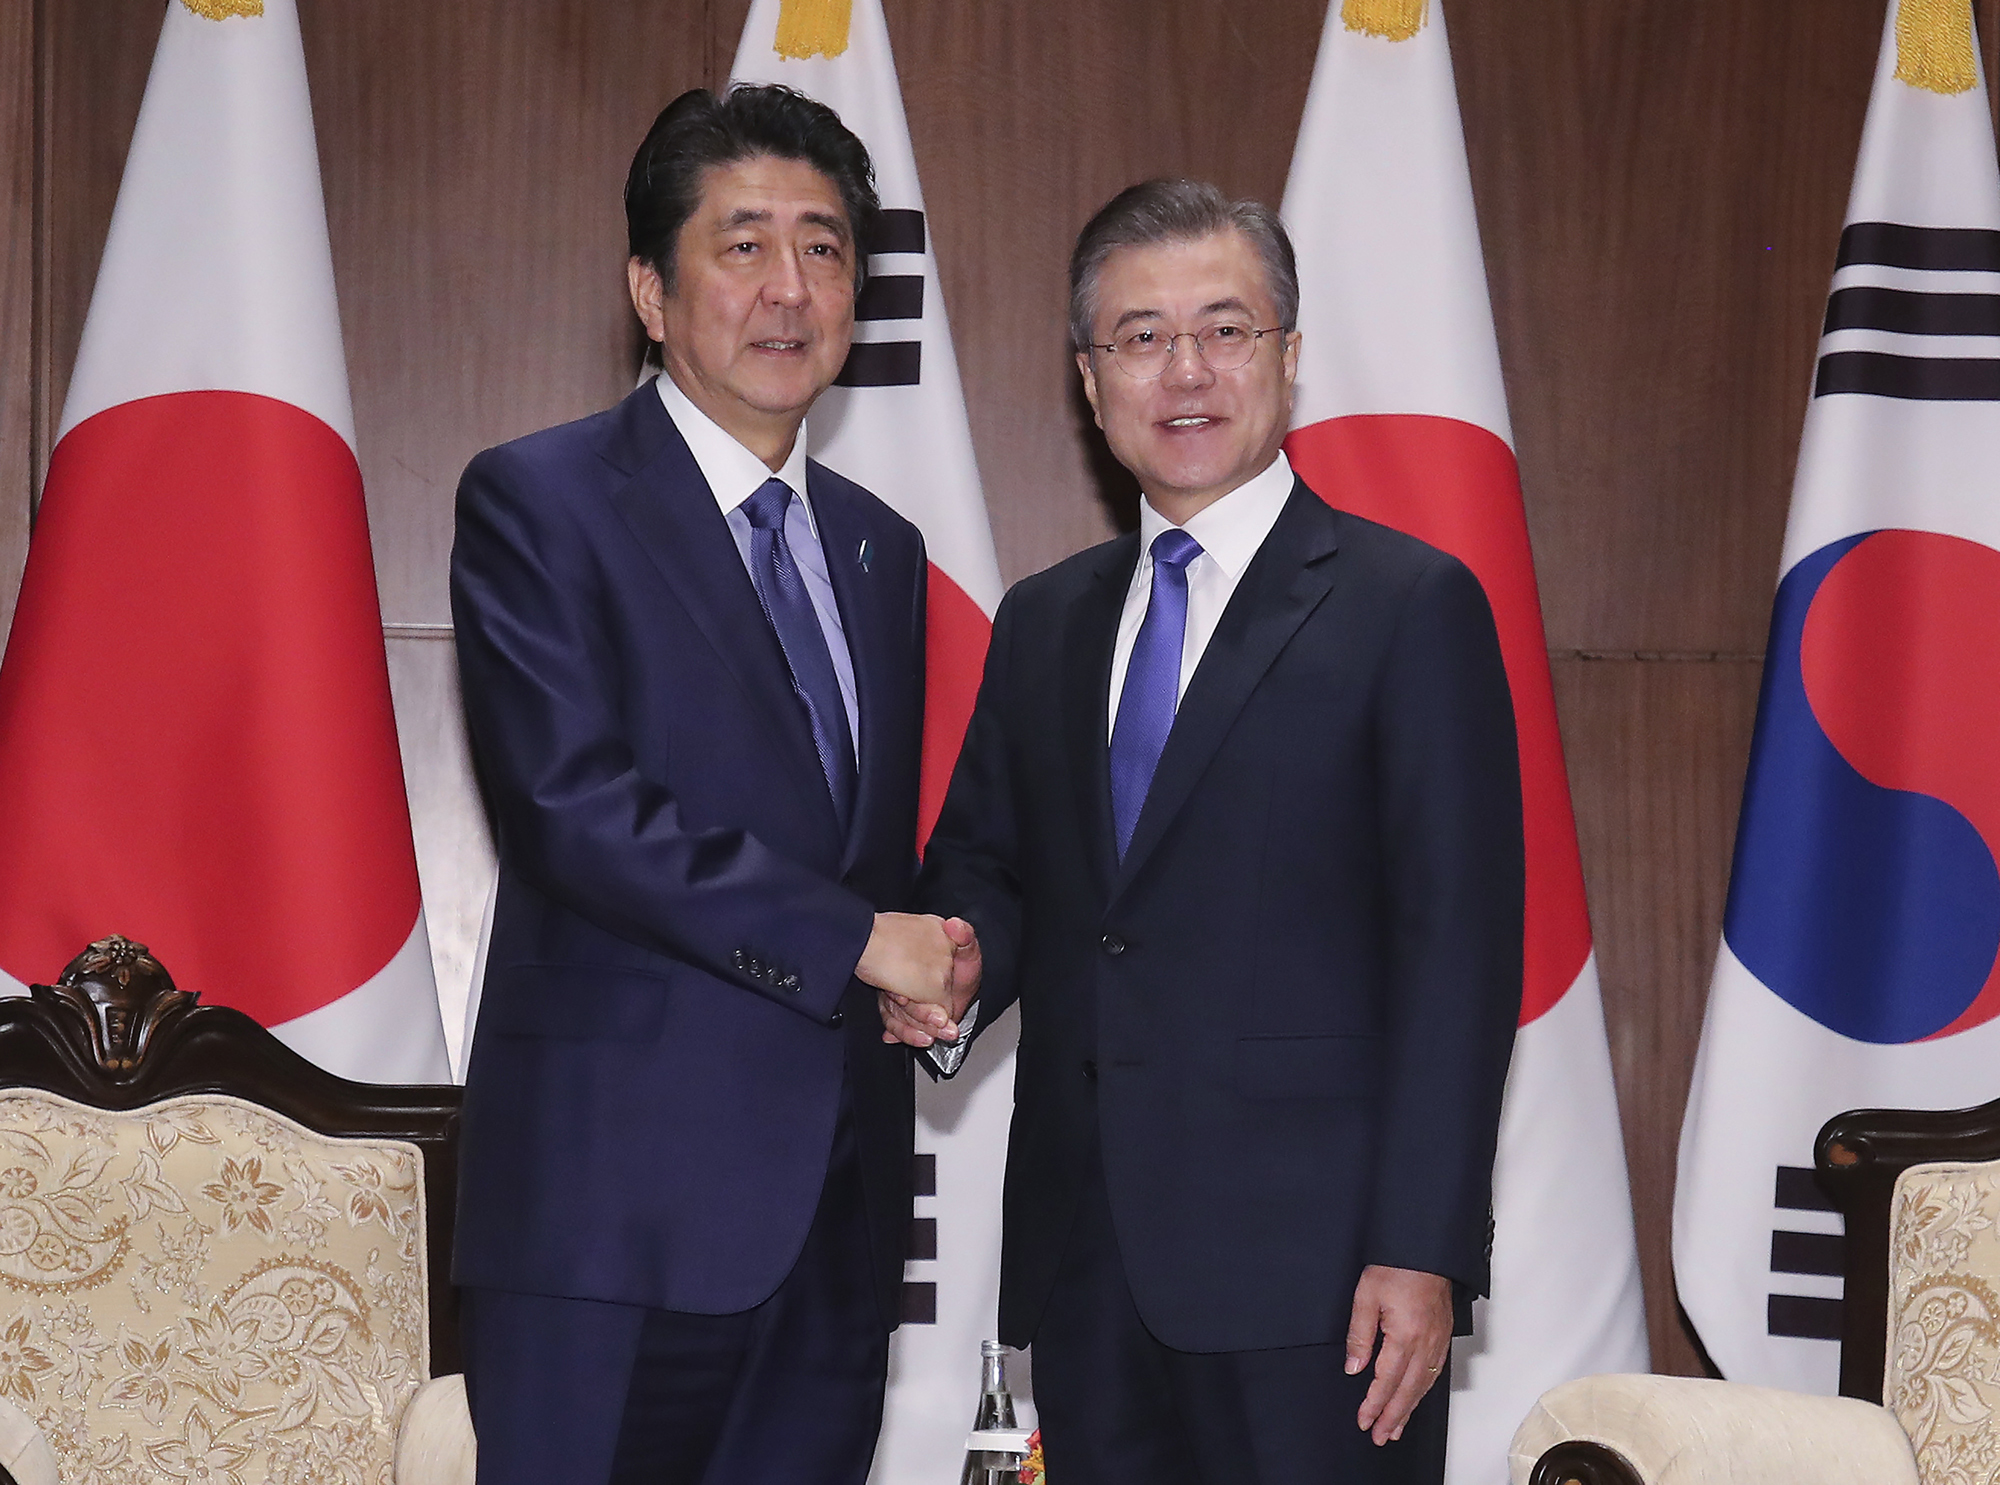 Prime Minister Shinzo Abe and South Korean President Moon Jae-in shake hands in a New York hotel on Sept. 25. The two leaders agreed to promote bilateral relations during their meeting, but since then ties have grown considerably cooler. | AP